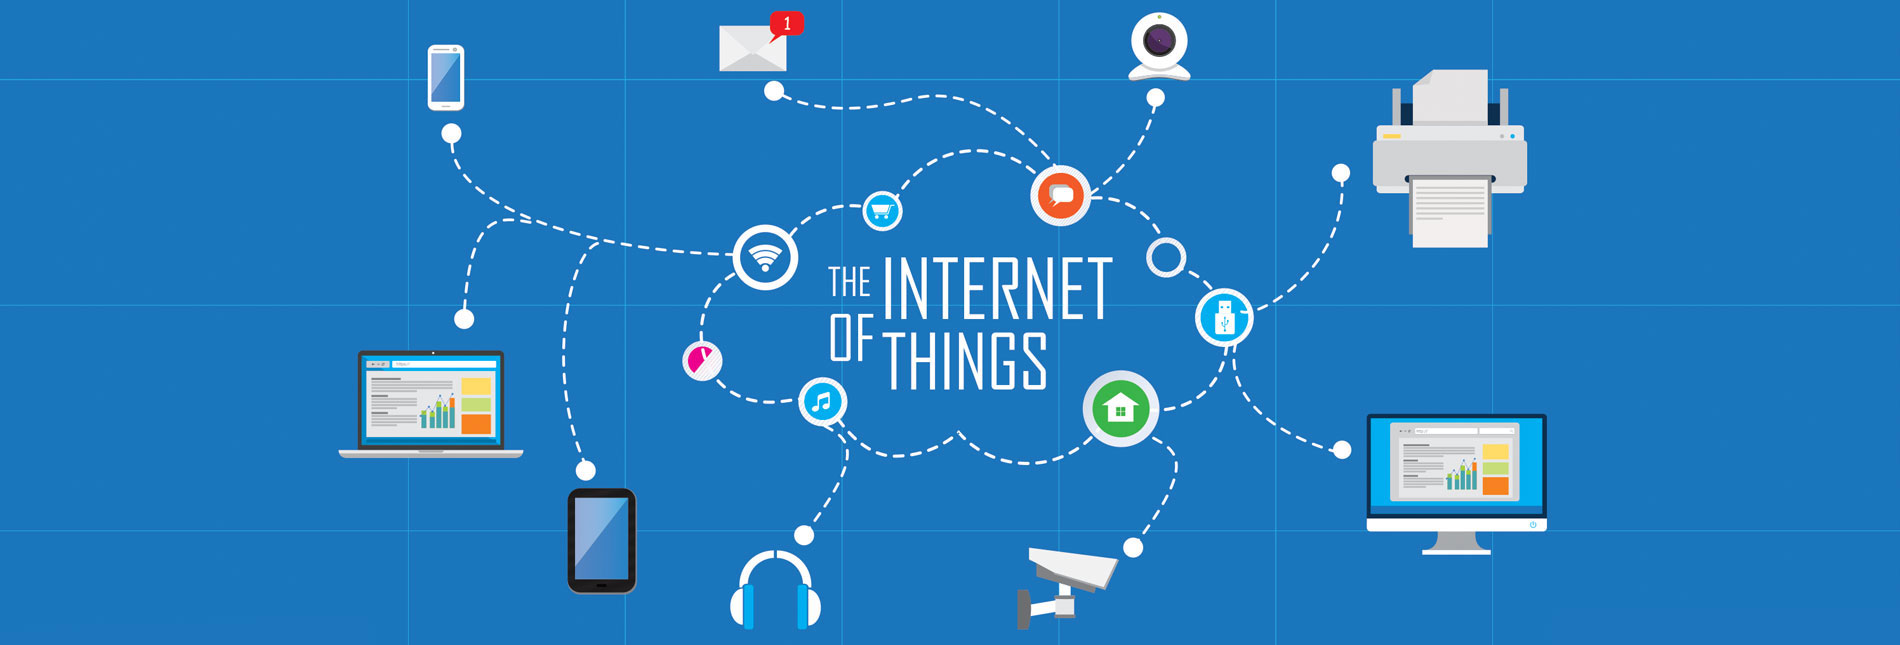 IOT-new-communication-channel